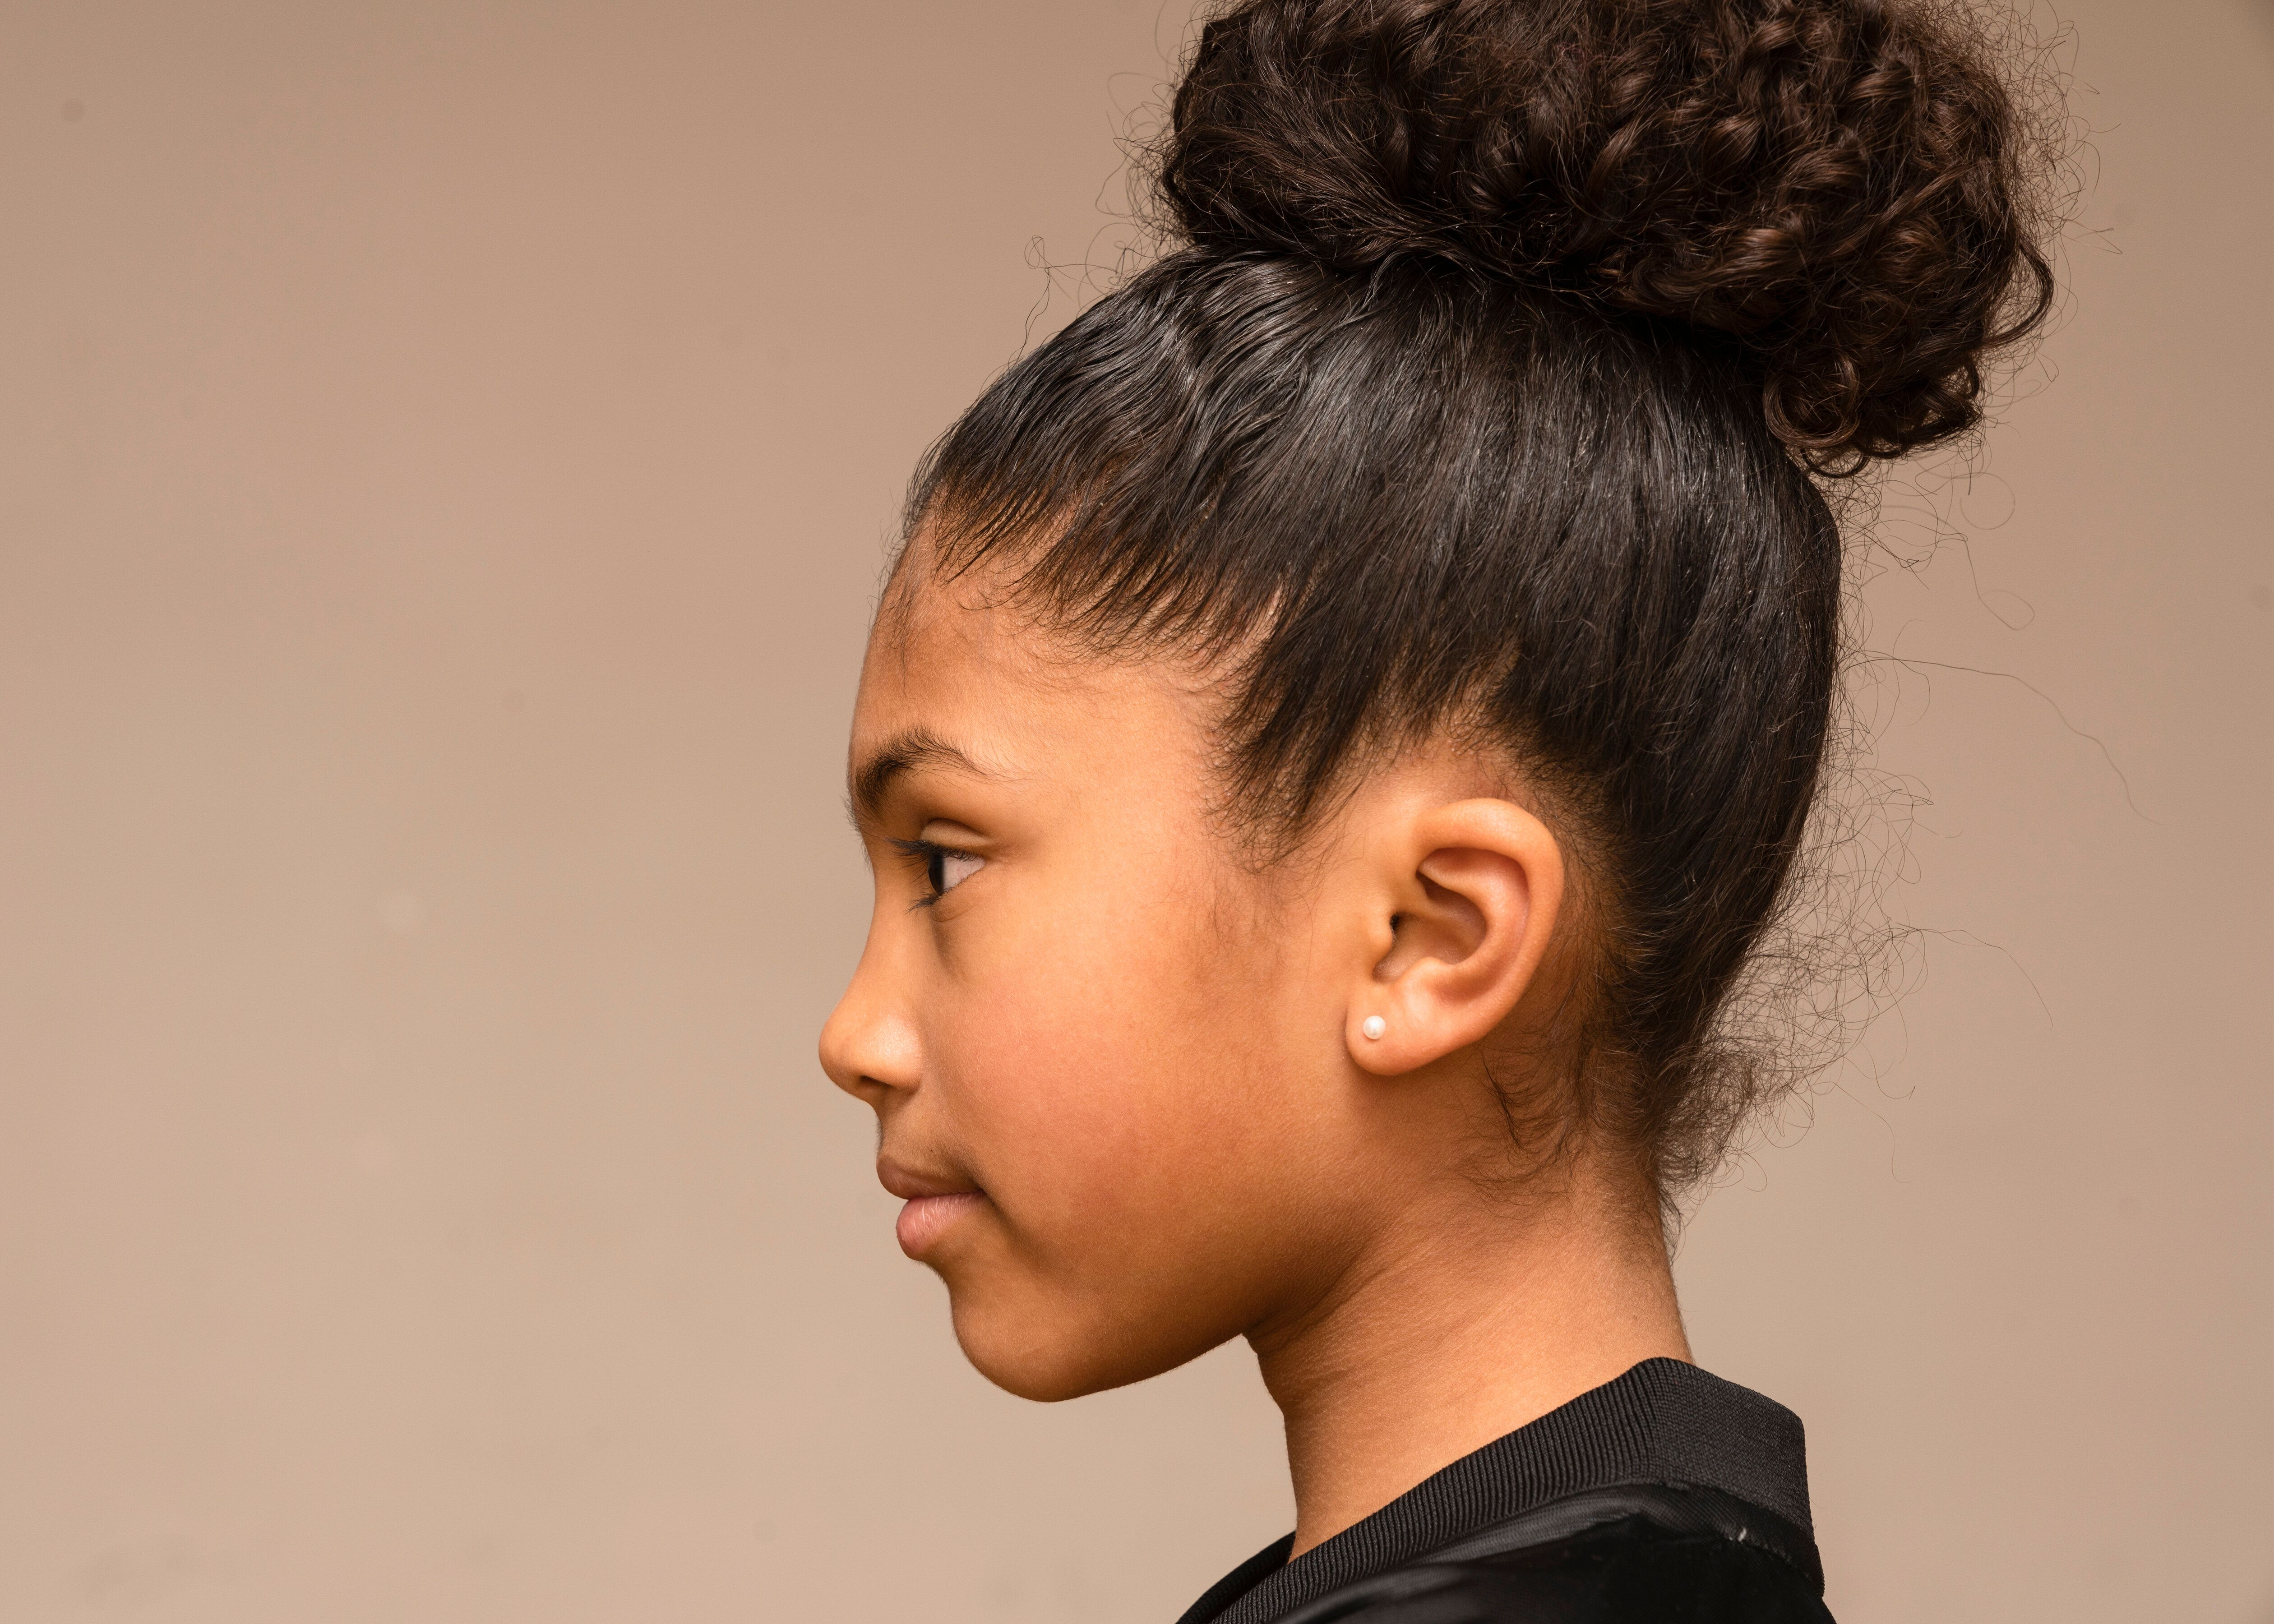 Adults view black girls as more adult-like and less innocent than white girls.